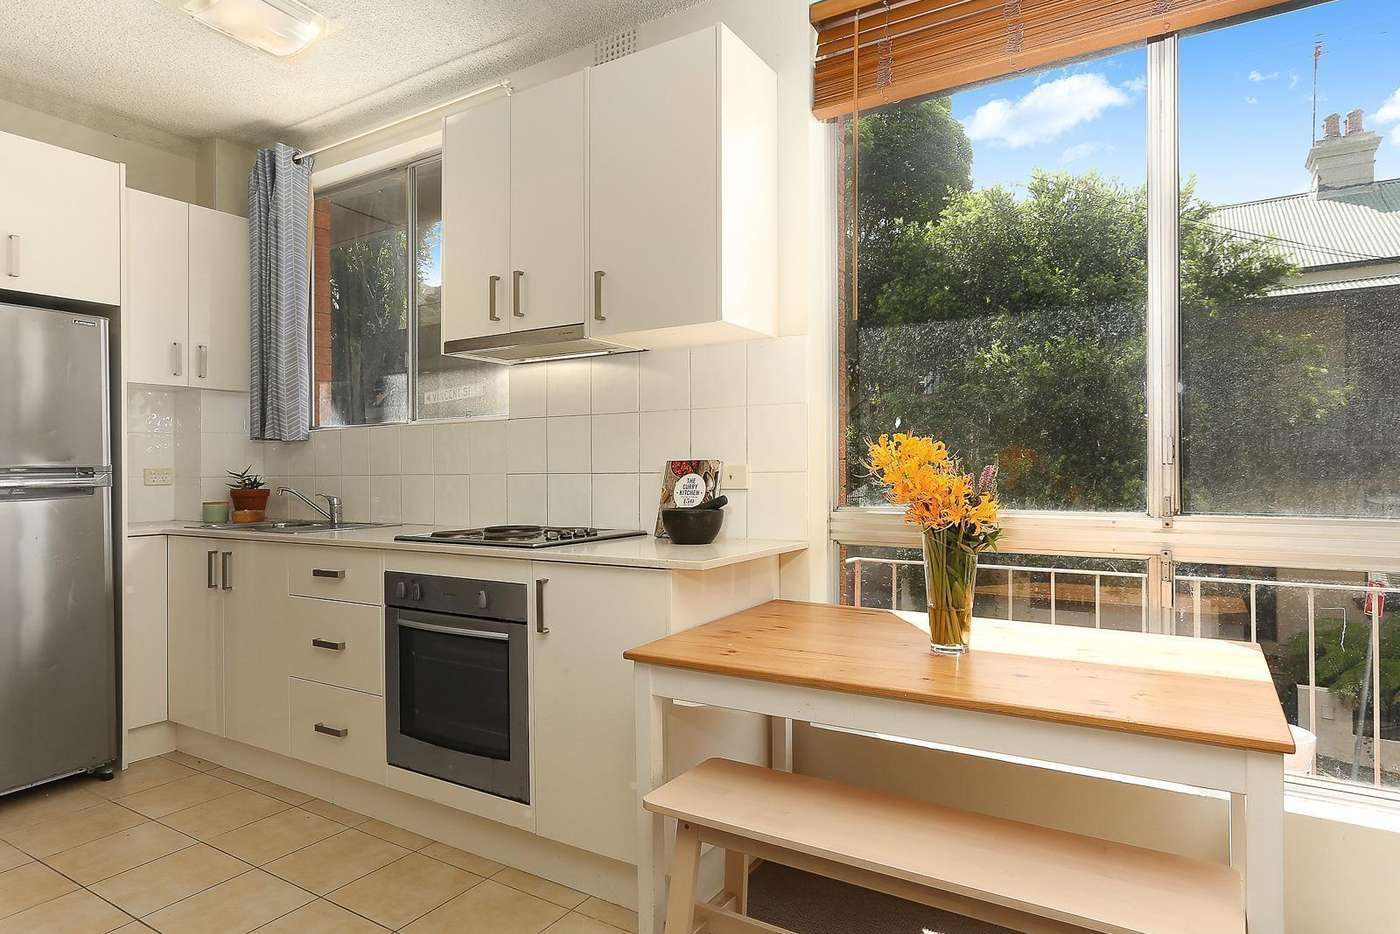 Main view of Homely apartment listing, 10/16 Vincent Street, Balmain NSW 2041